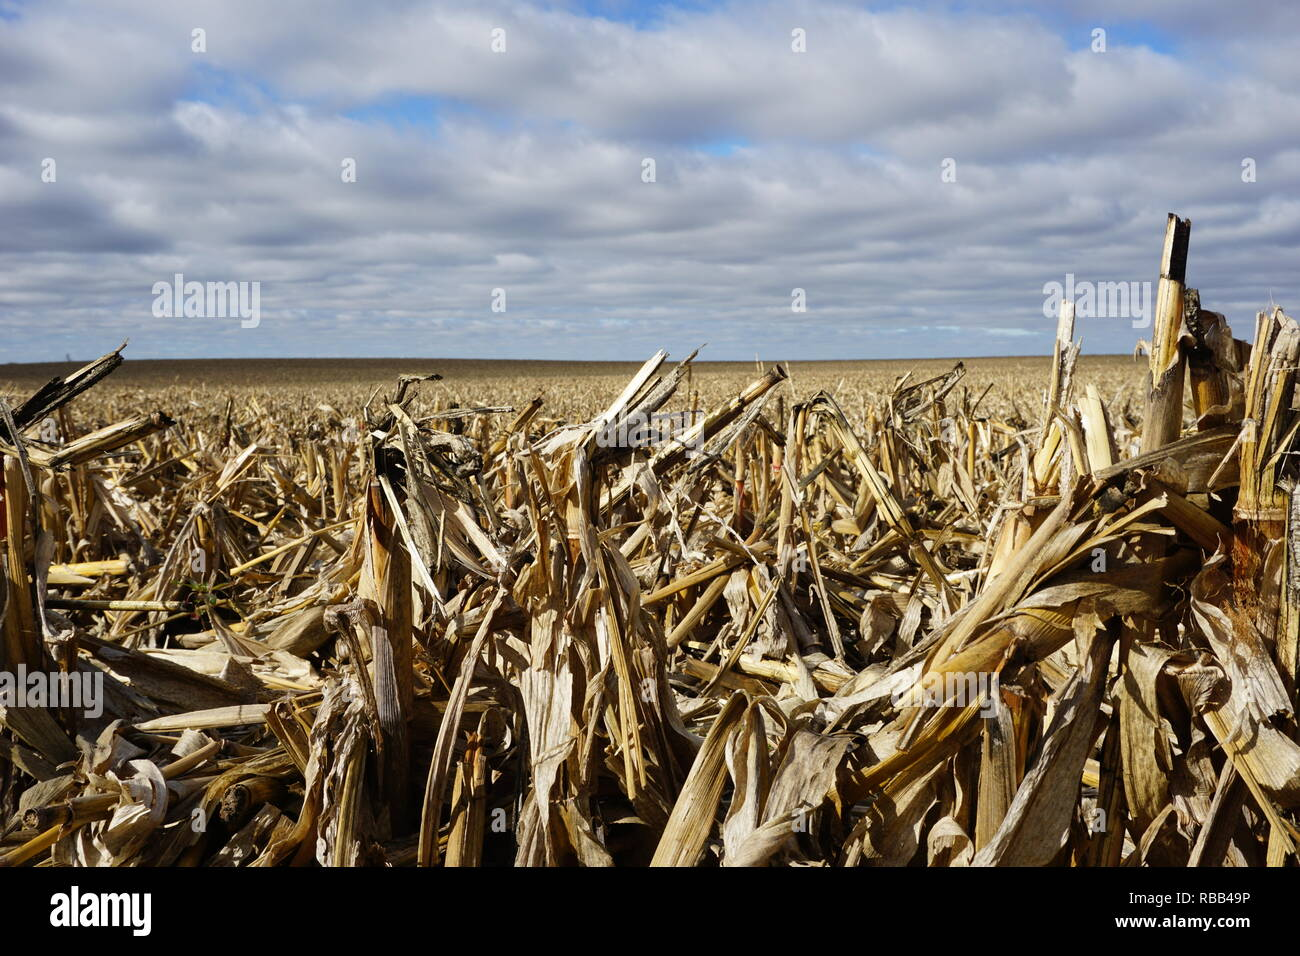 Cornfield and Sky, Central Illinois - Stock Image